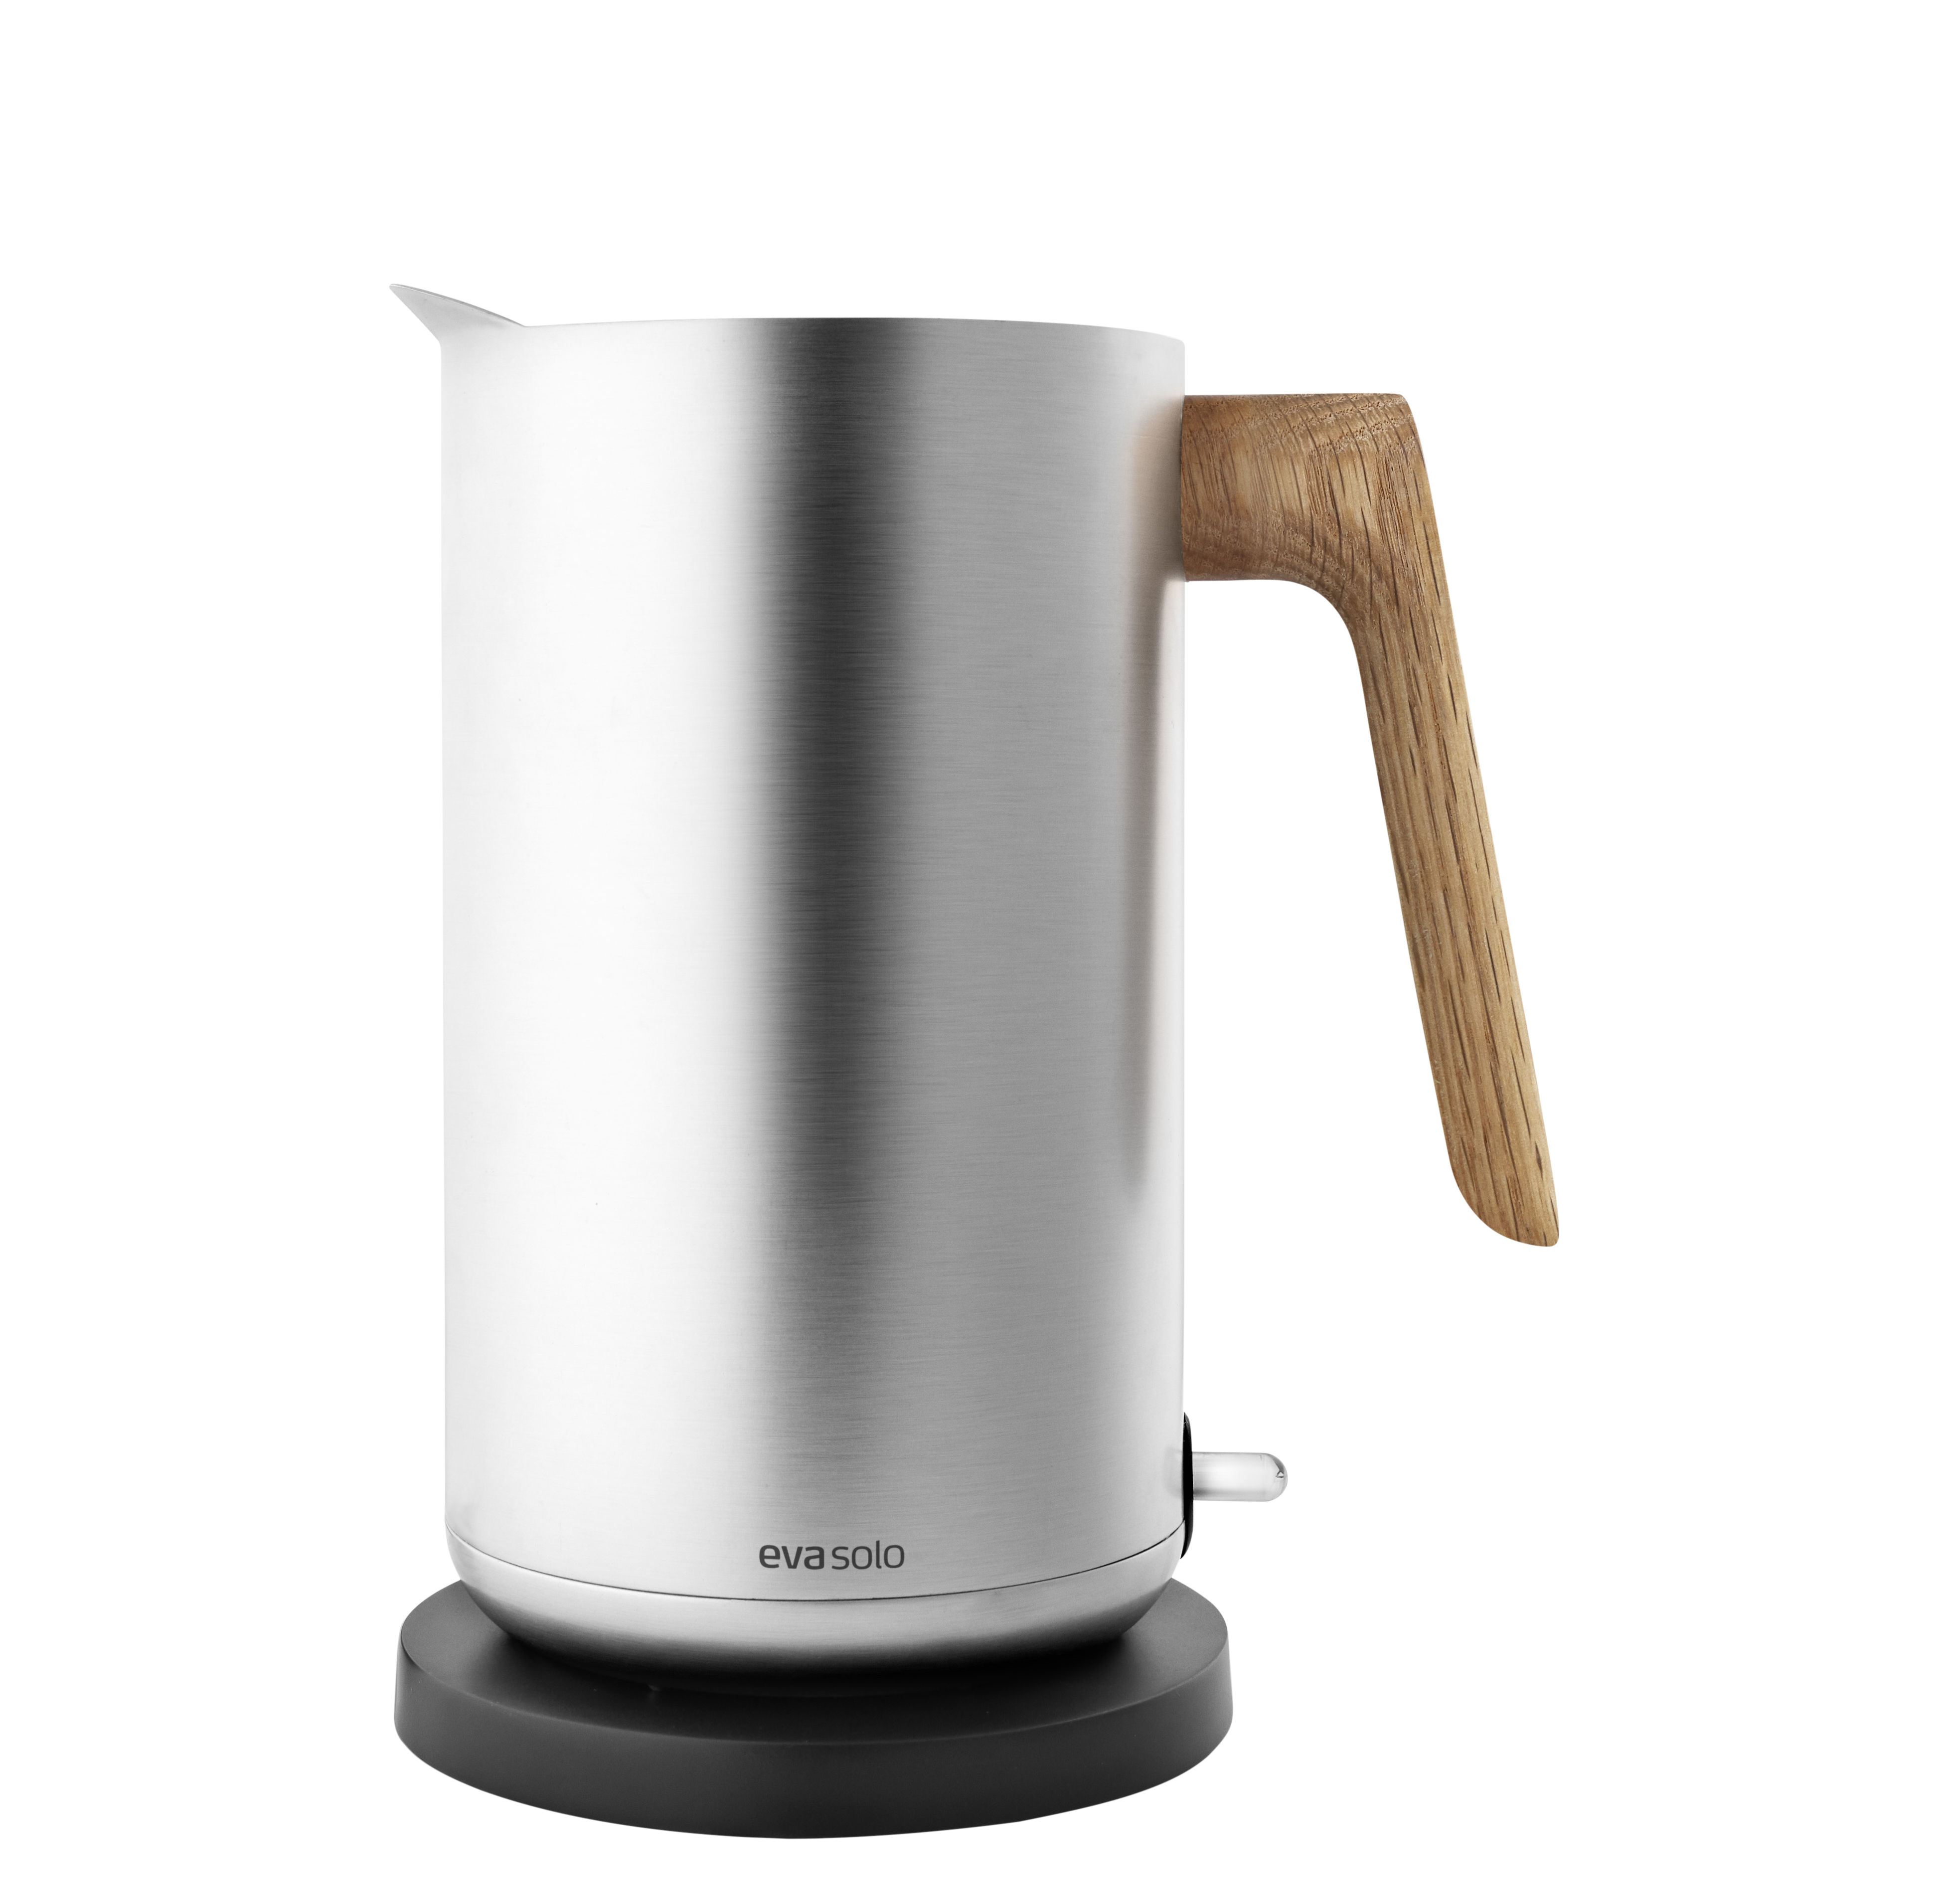 Kitchenware - Kettles & Teapots - Nordic Kitchen Kettle - / 1.5 L - Steel & oak by Eva Solo - Stainless steel / Oak - Oak, Stainless steel